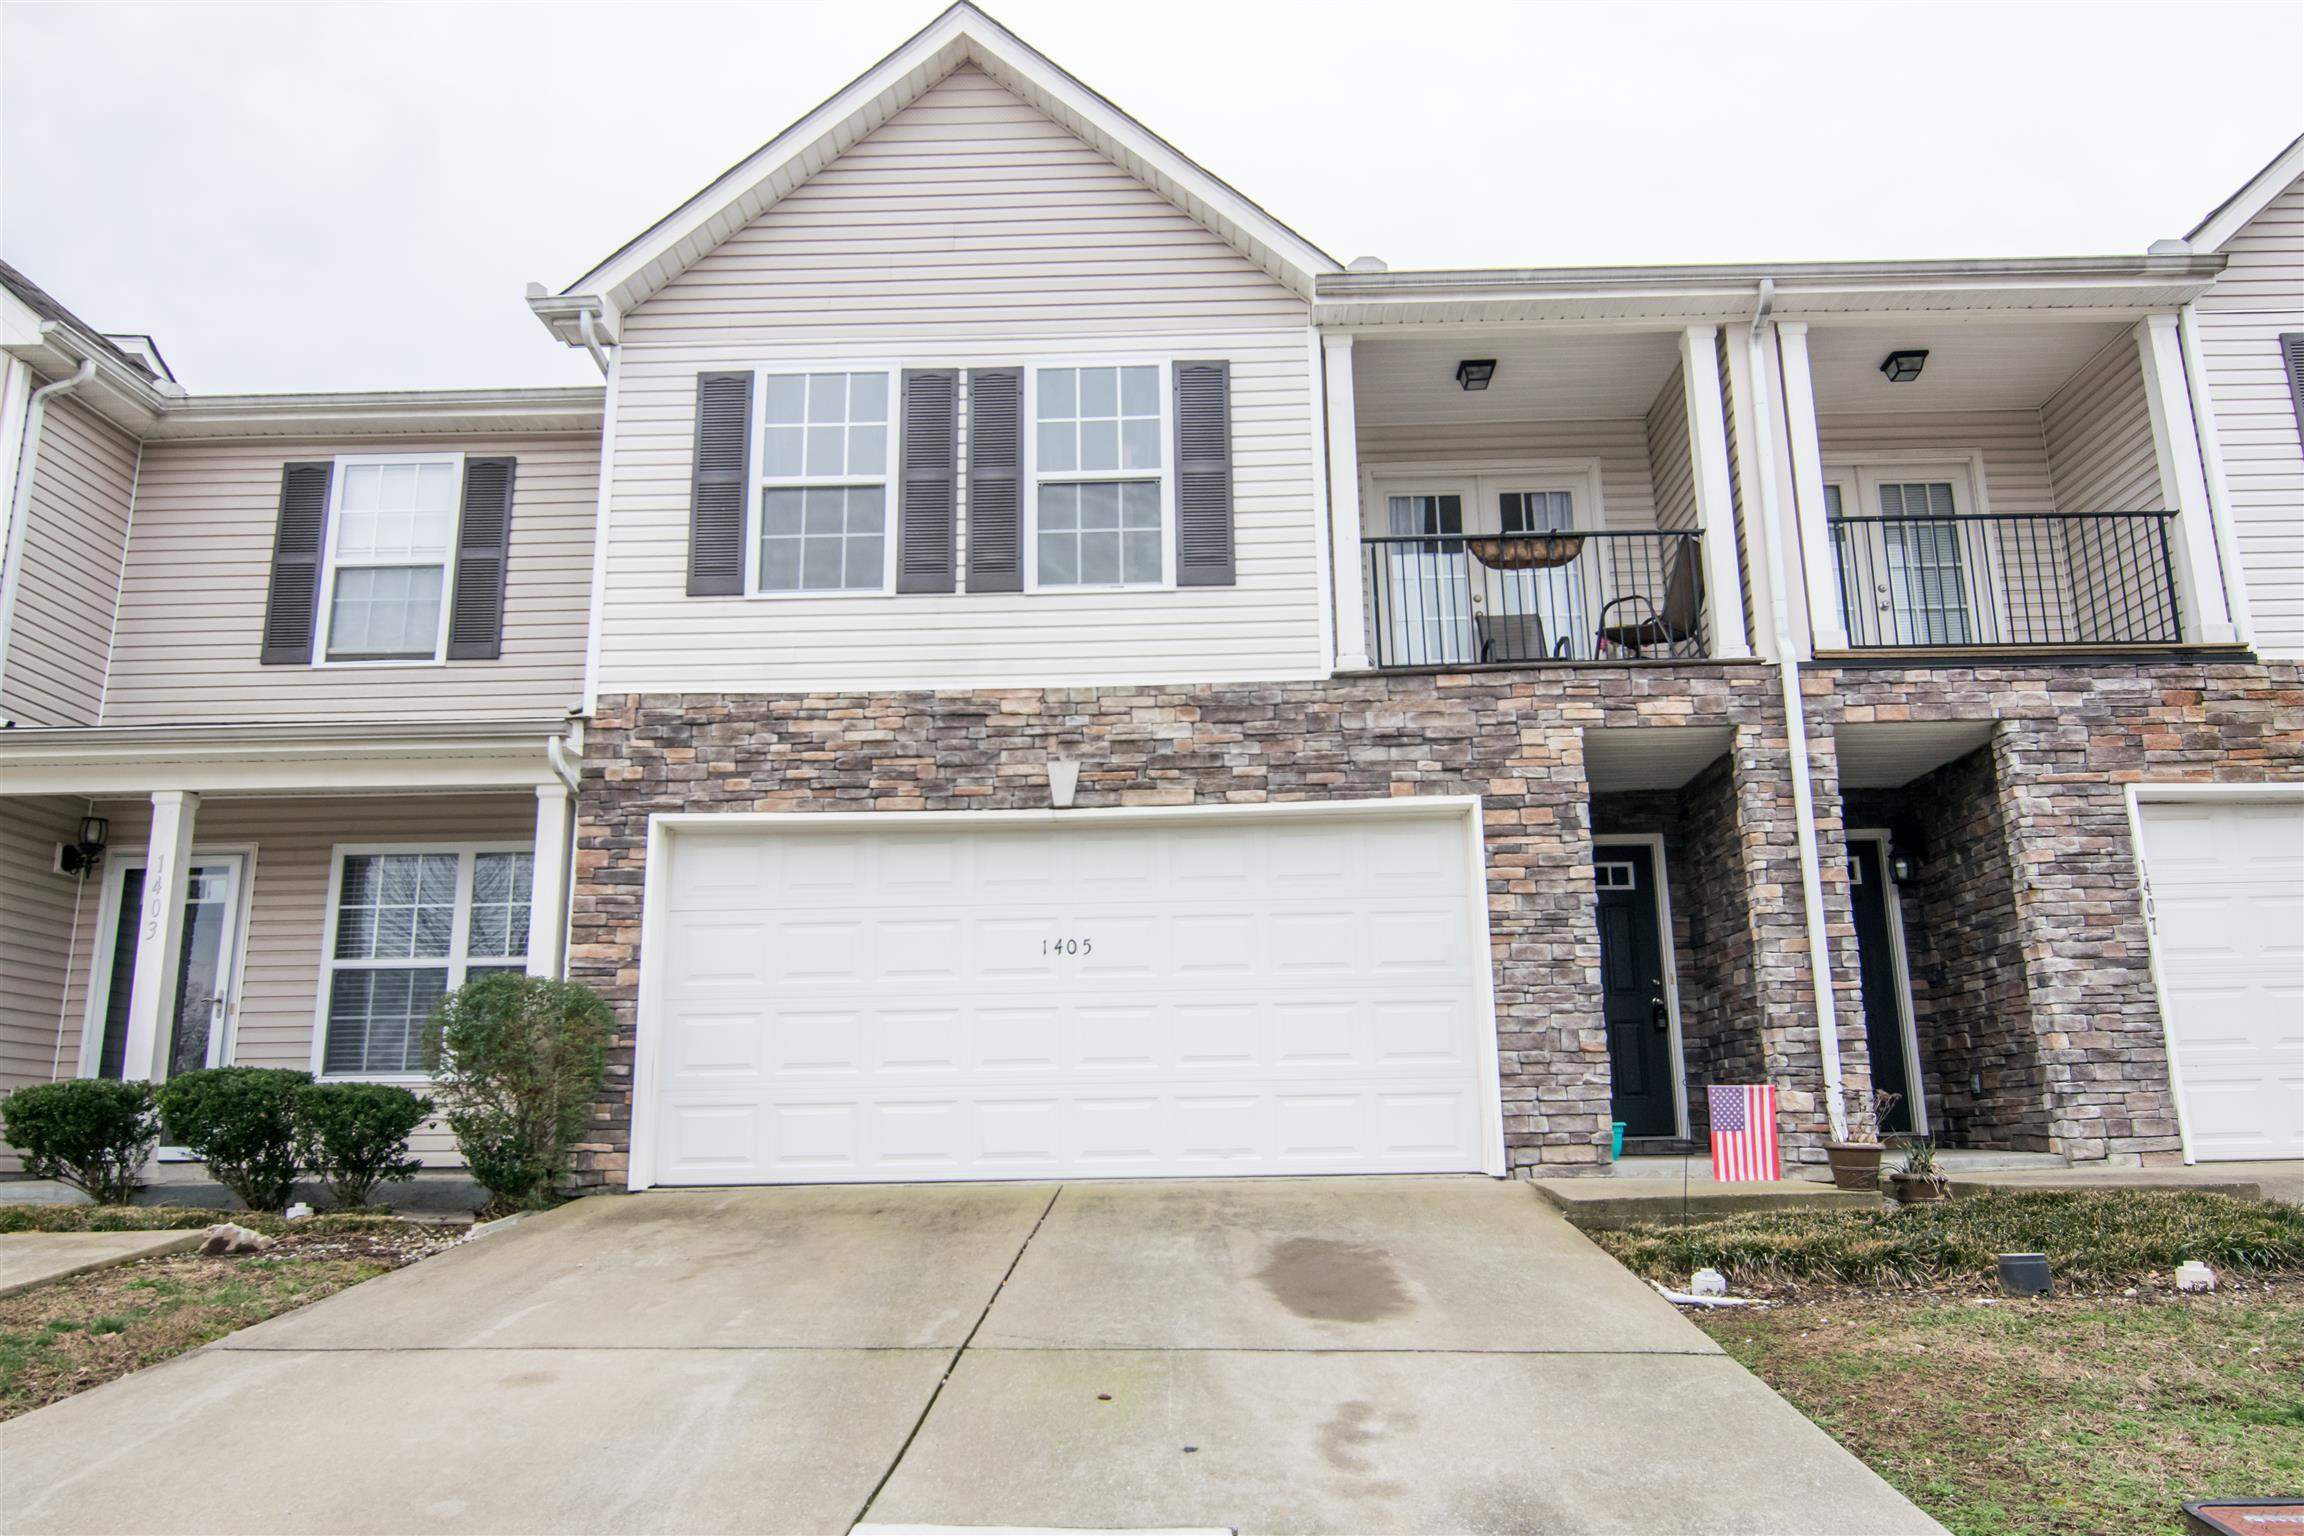 1405 Lady Nashville Ct, Hermitage, Tennessee